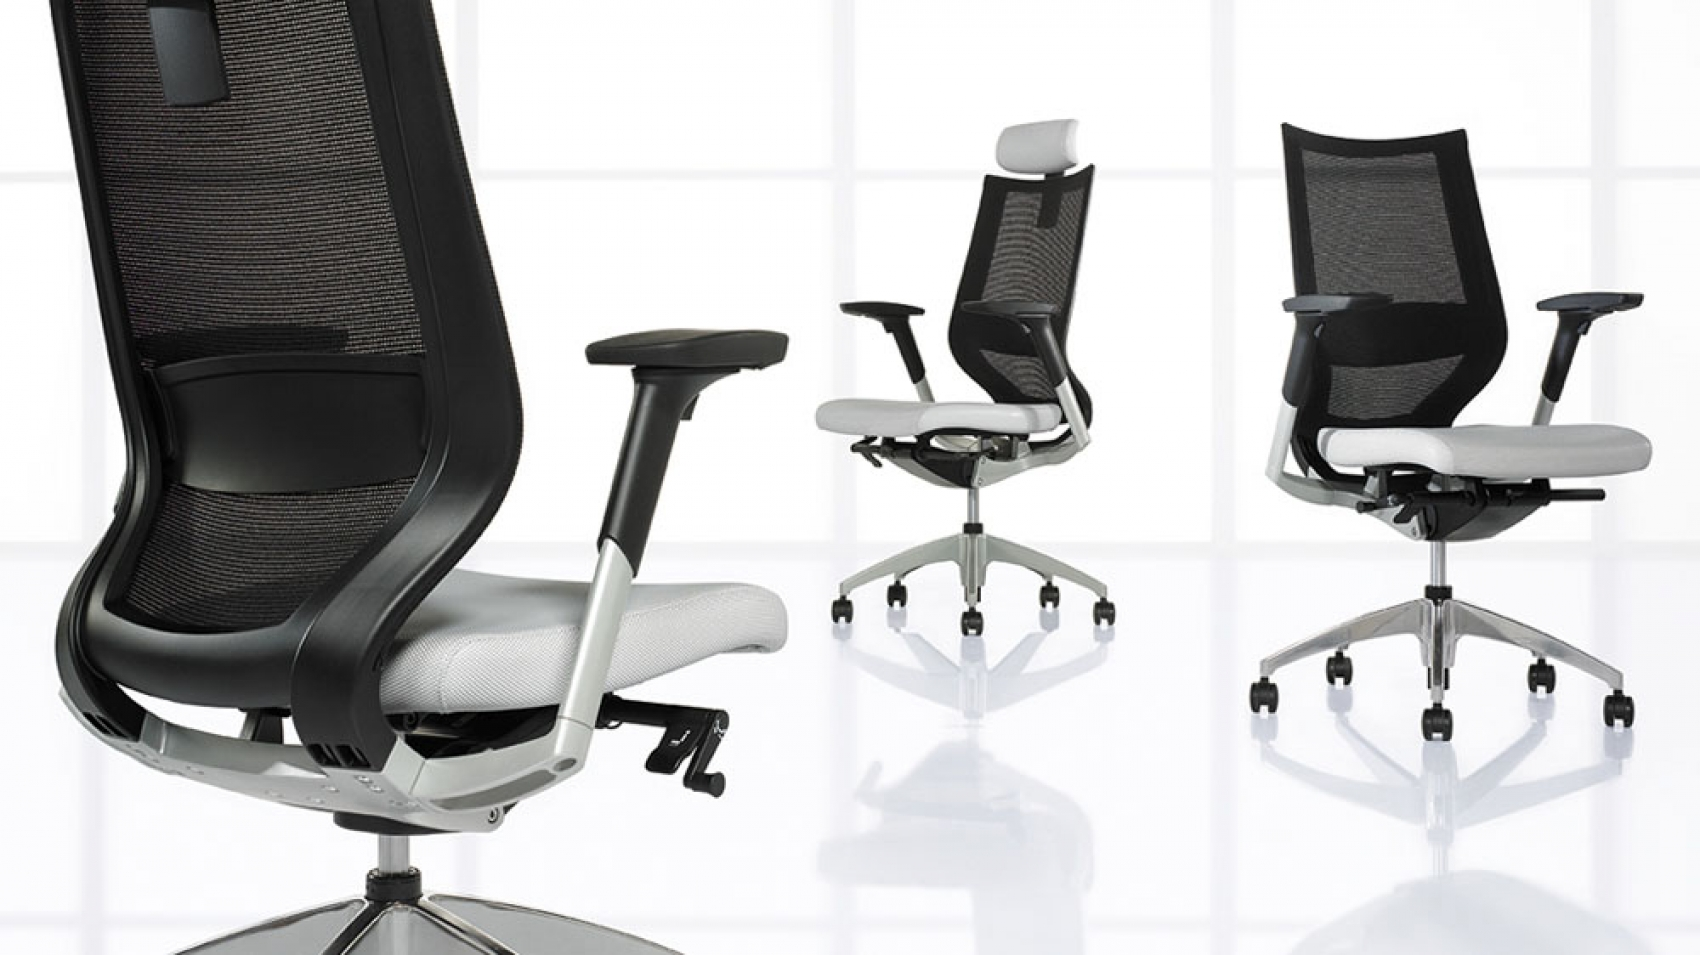 swivel chair not staying up design scandinavian seating and virginia maryland dc task chairs